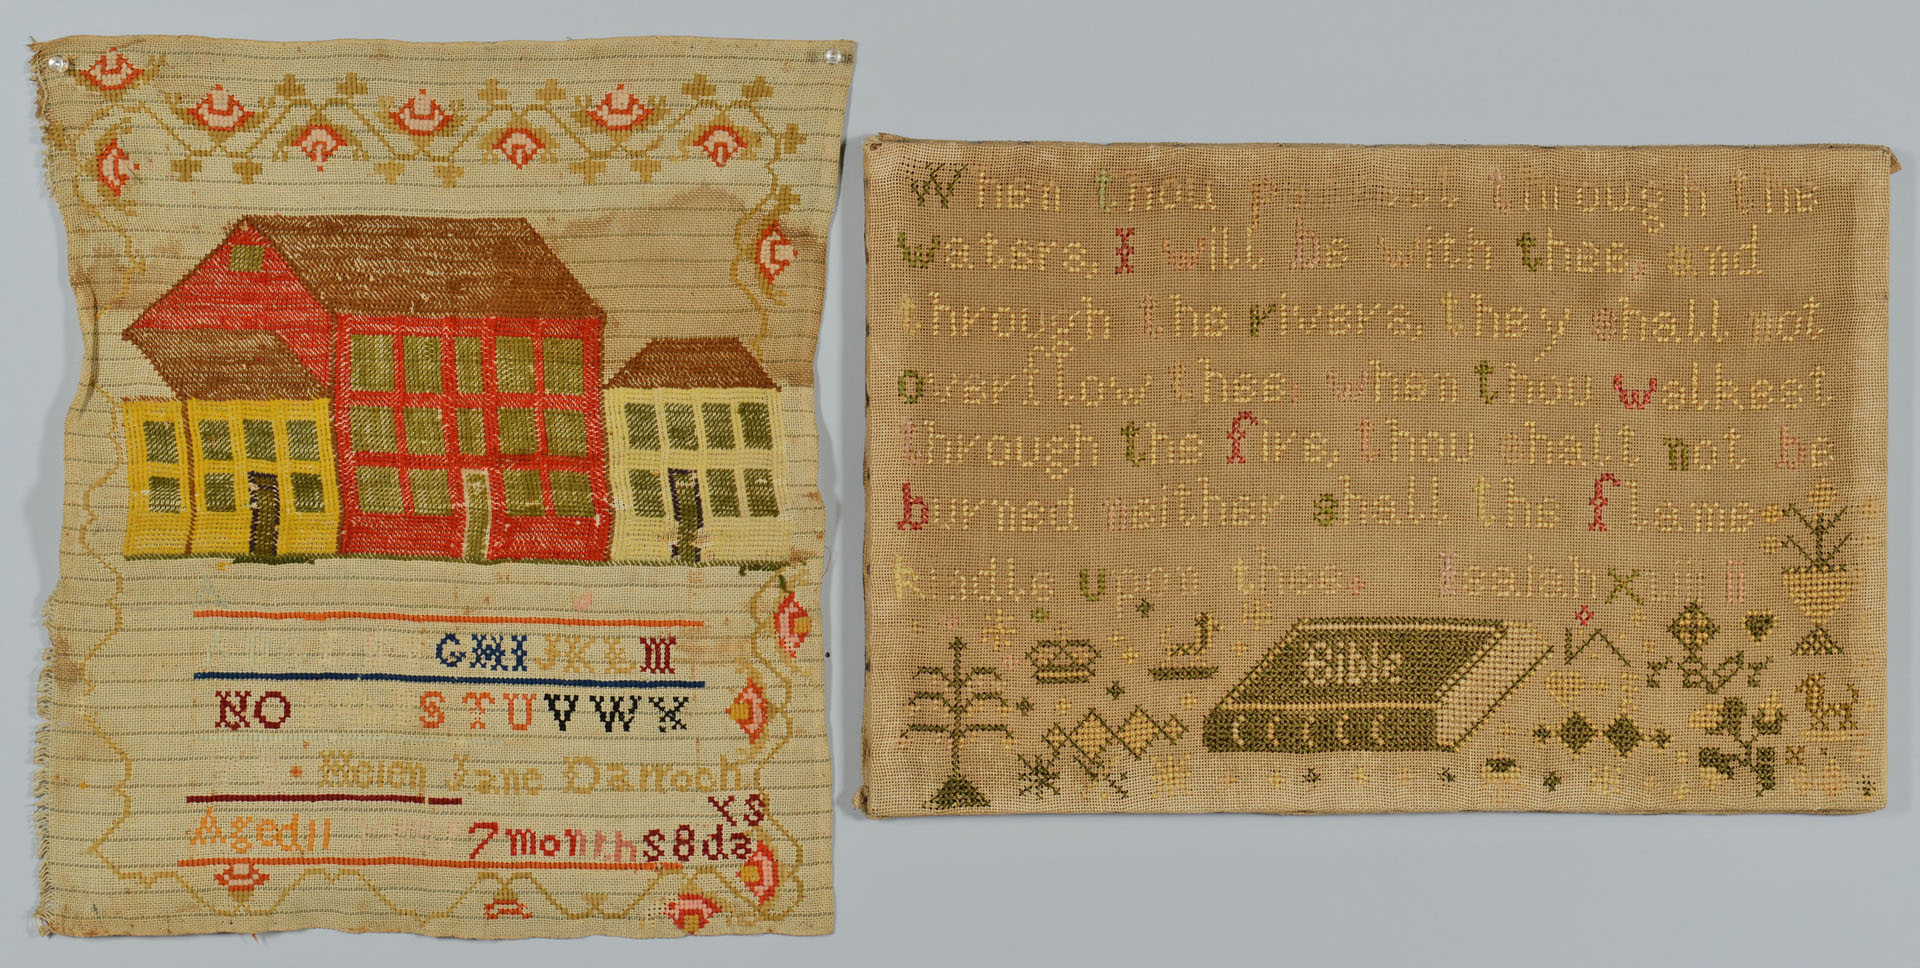 Lot 652: 2 Samplers, Pictorial Bible Verse and Building